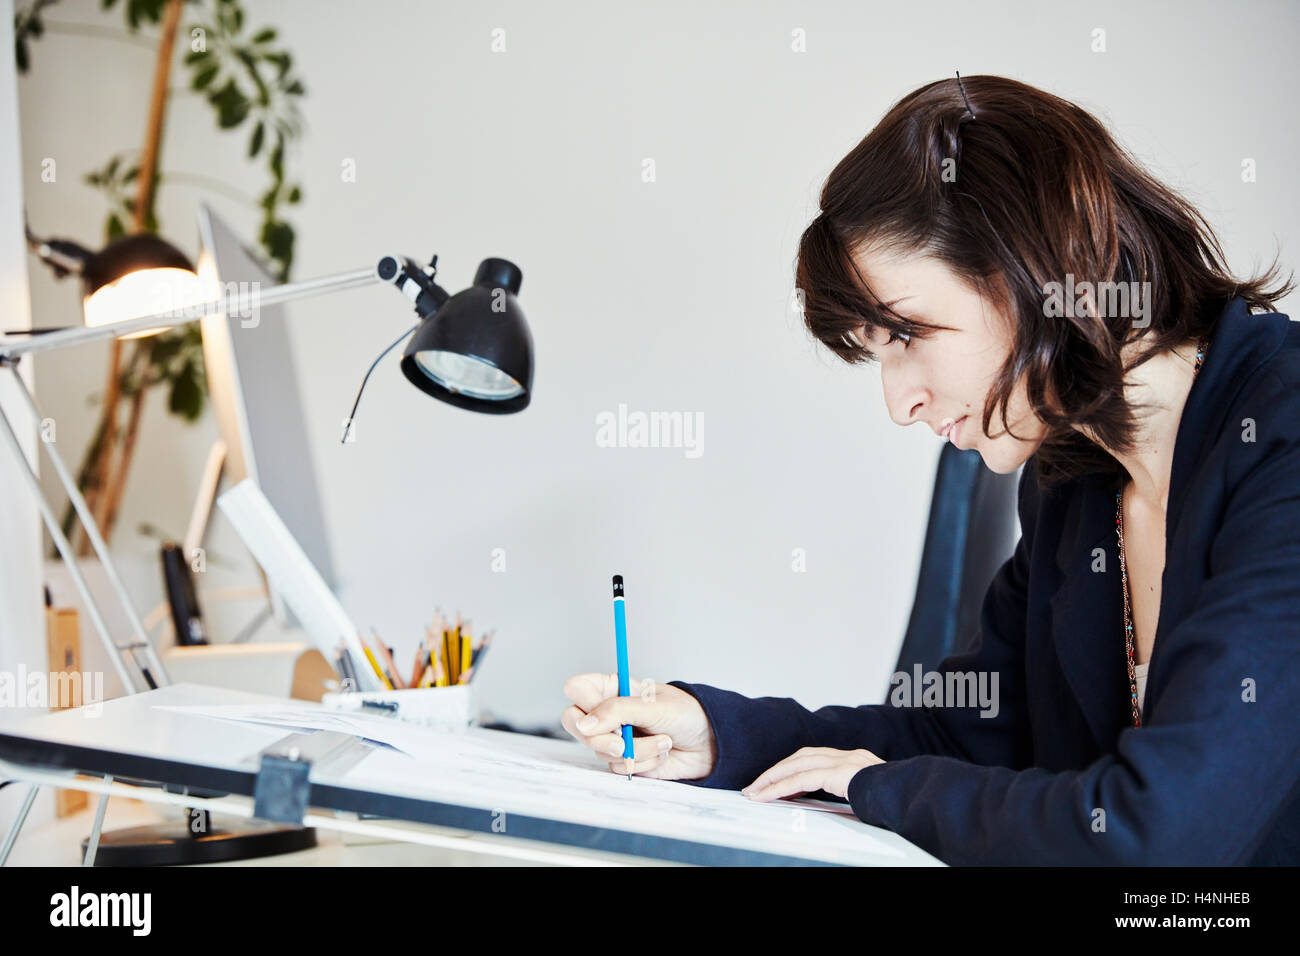 A woman working on a graphic on a drawing board, outlining letters with a pencil. - Stock Image